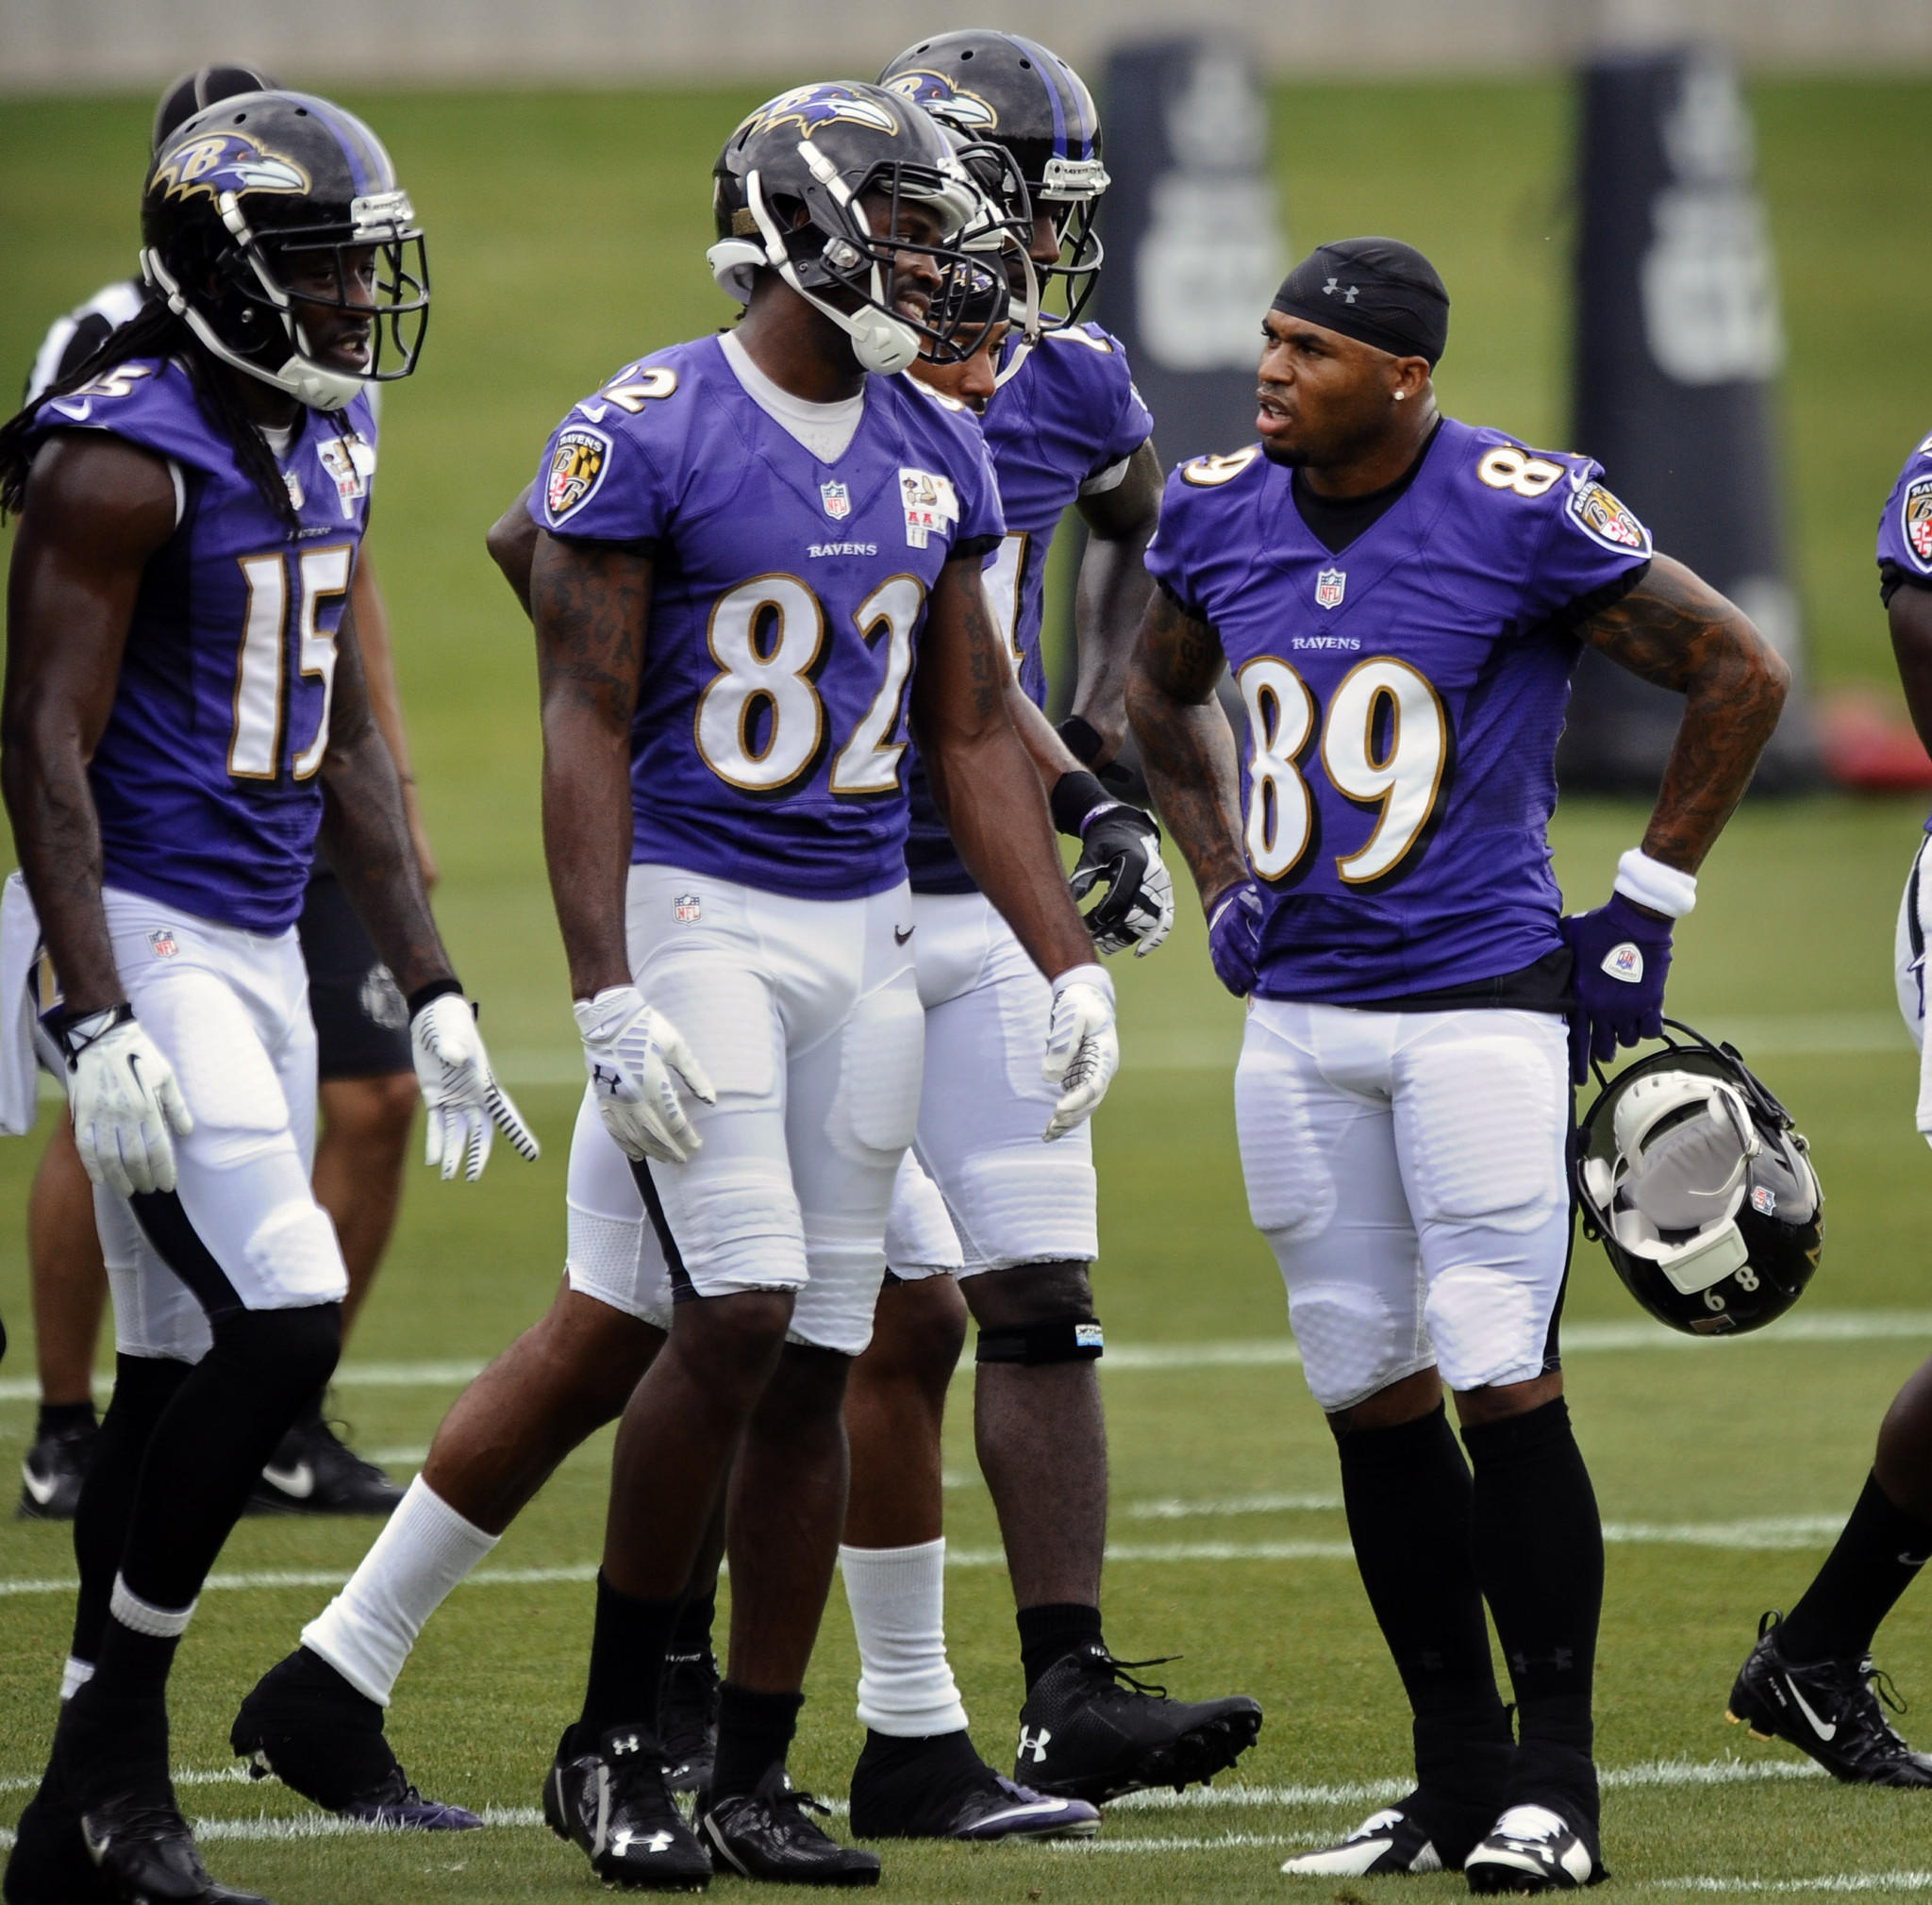 Ravens wide receiver Steve Smith (No. 89) interacts with teammate Torrey Smith on the last day of minicamp in June.